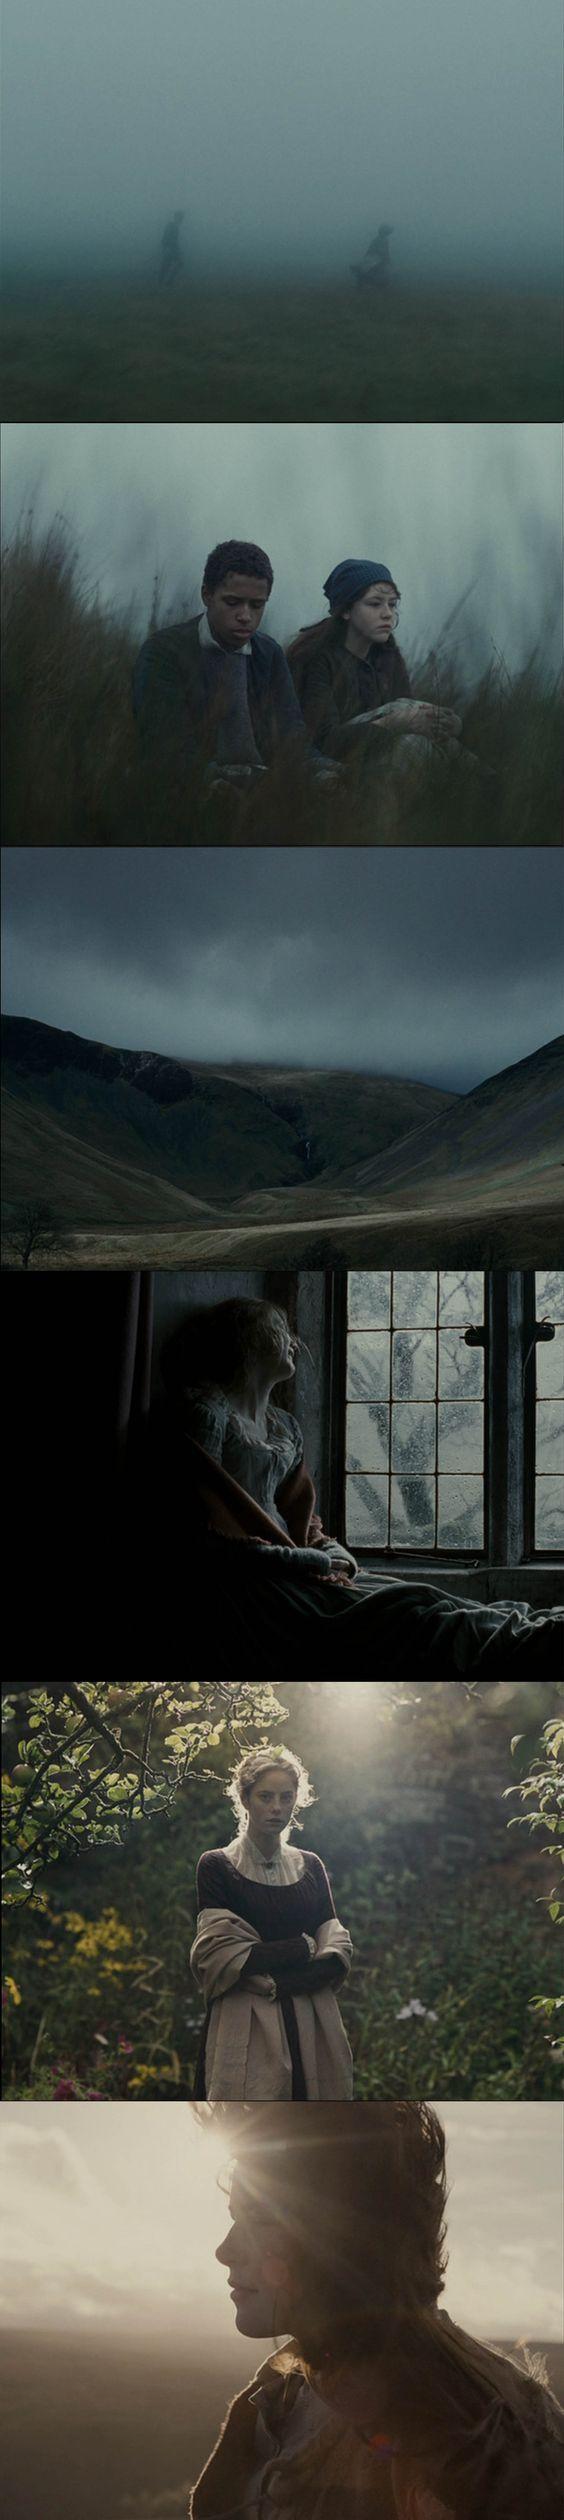 Wuthering Heights (Andrea Arnold, 2011) DoP: Robbie Ryan Sources: film-grab.com, bluray.com: